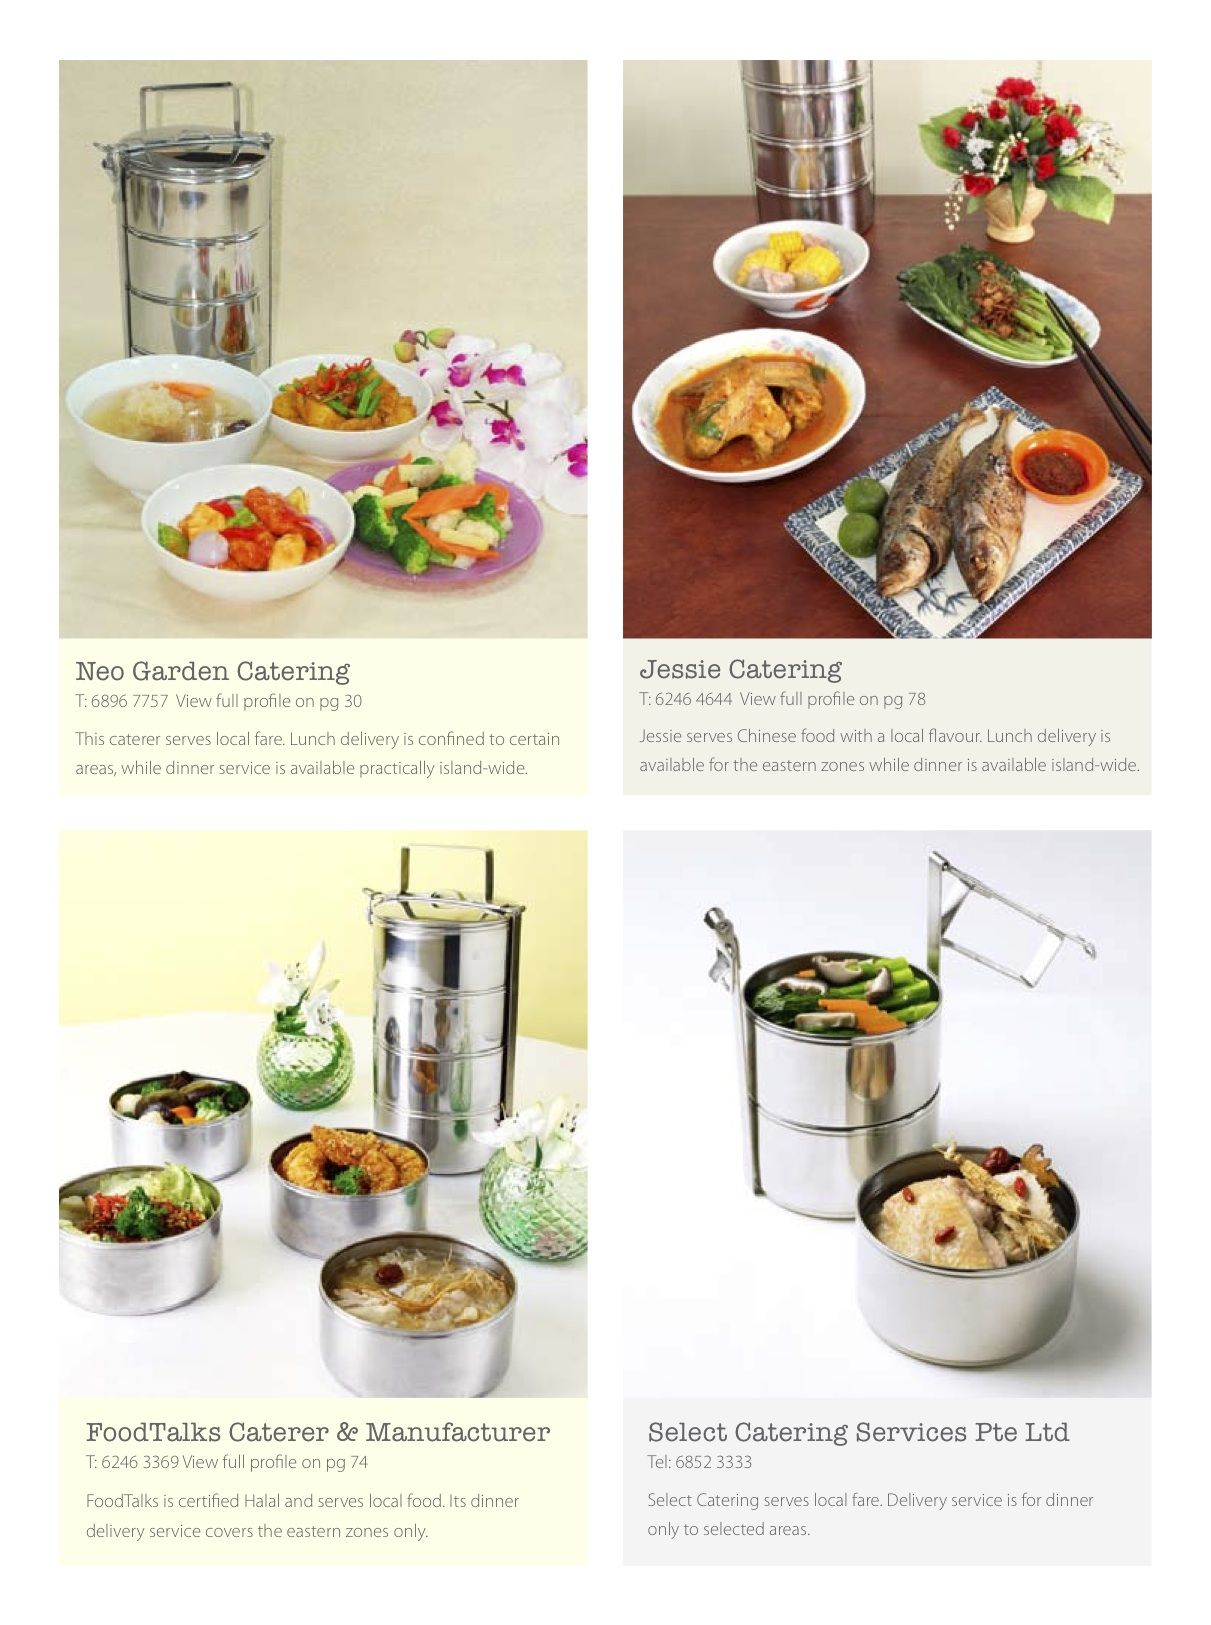 Tingkat Home Delivery Meals Www Facebook Com Cateringonline Home Delivery Meals Dinner Delivery Food Delivery